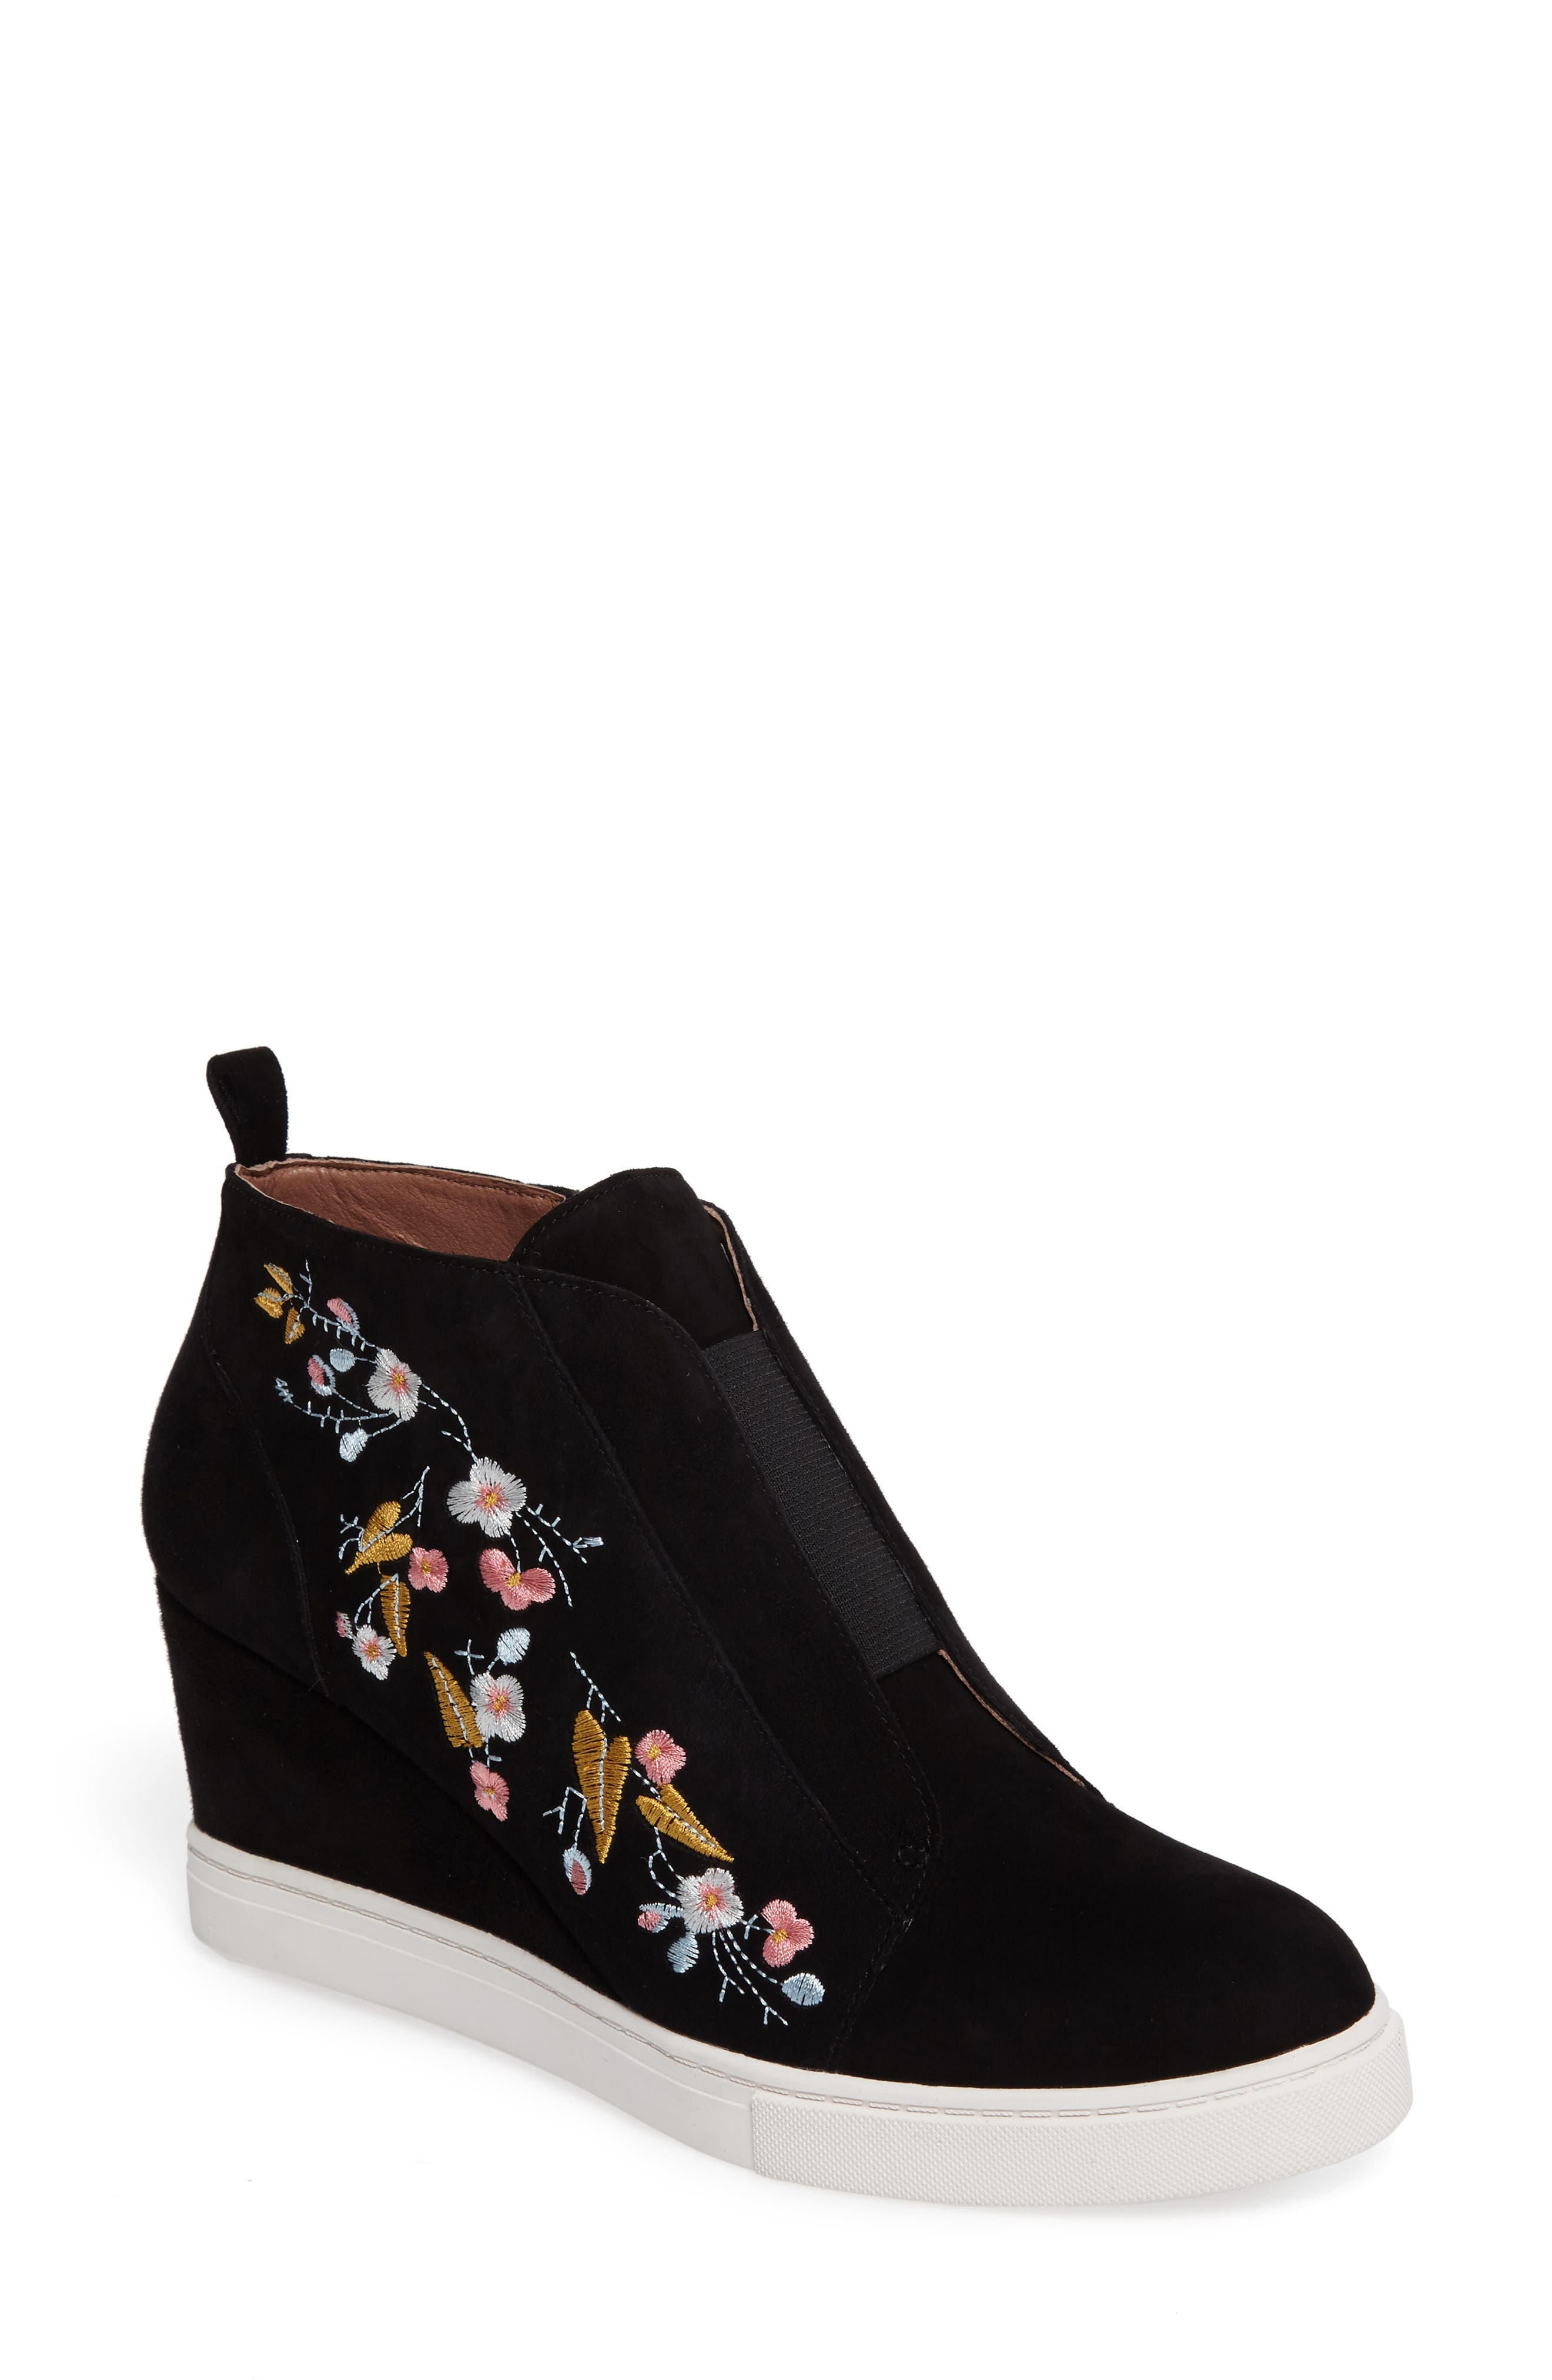 Felicia II Wedge Bootie,                             Main thumbnail 1, color,                             Black Embroidery Suede